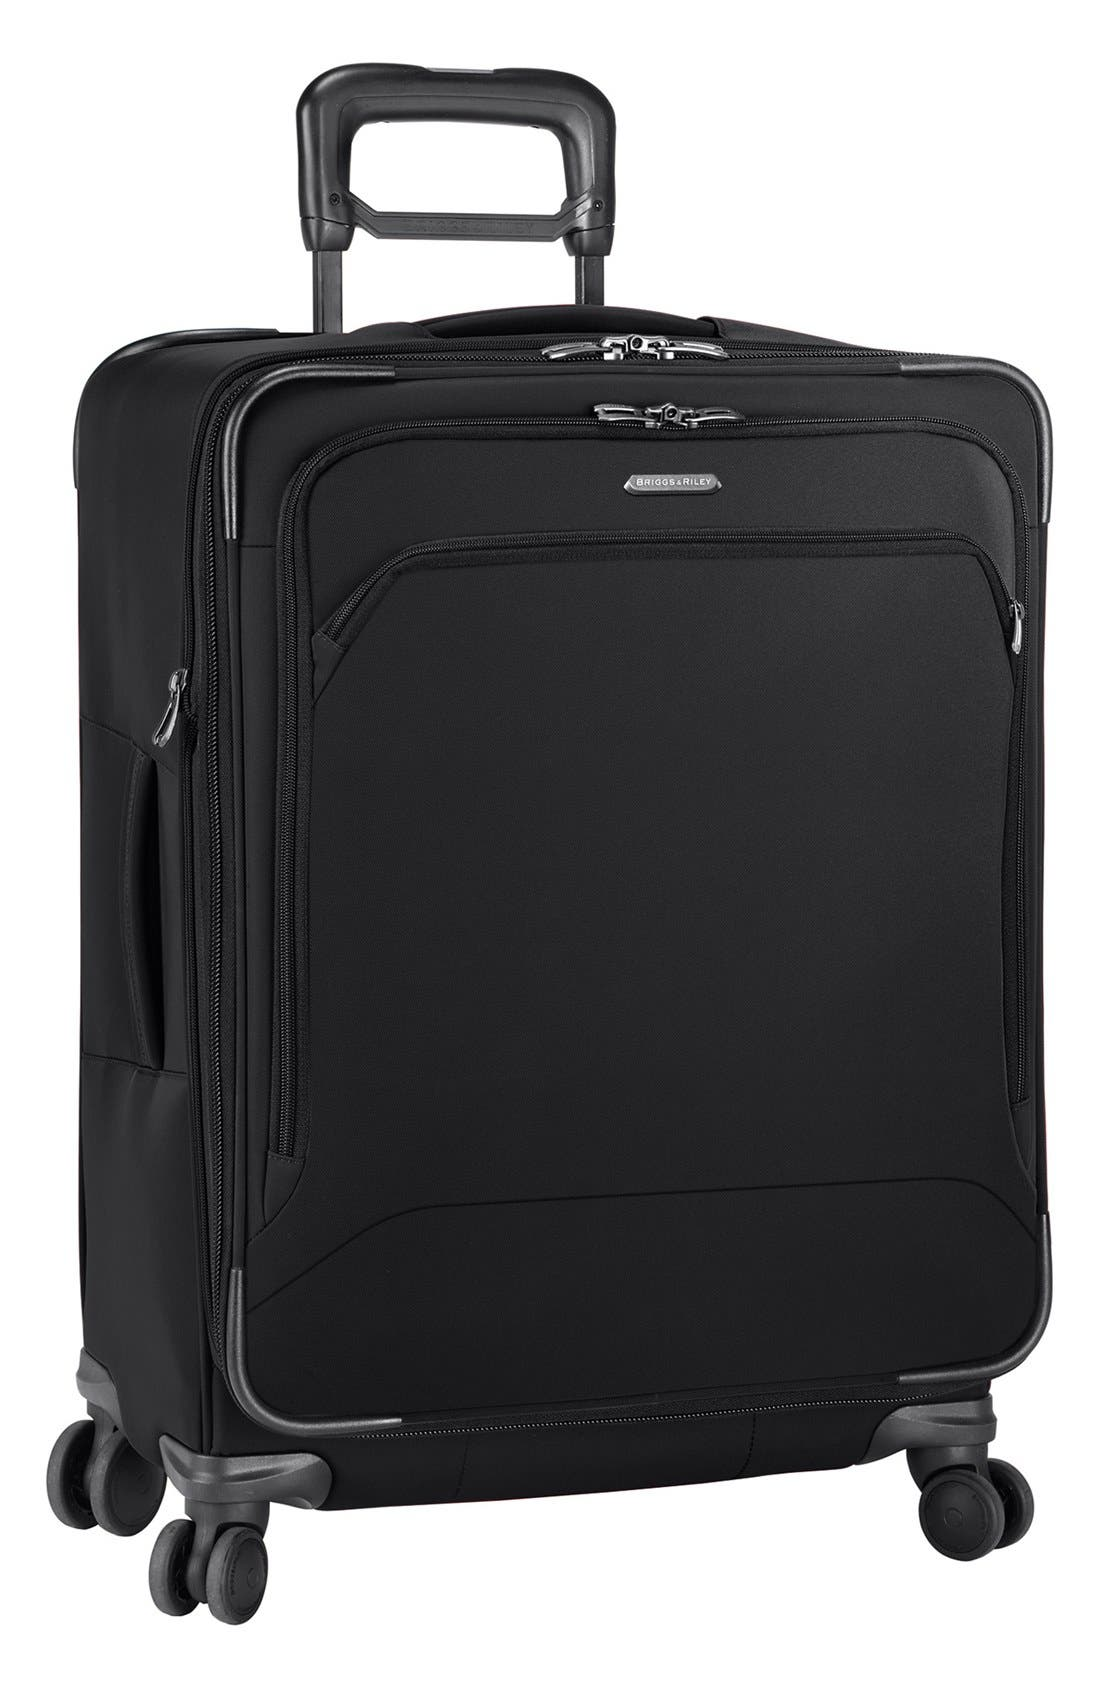 BRIGGS & RILEY 'Transcend' Medium Expandable Wheeled Suitcase